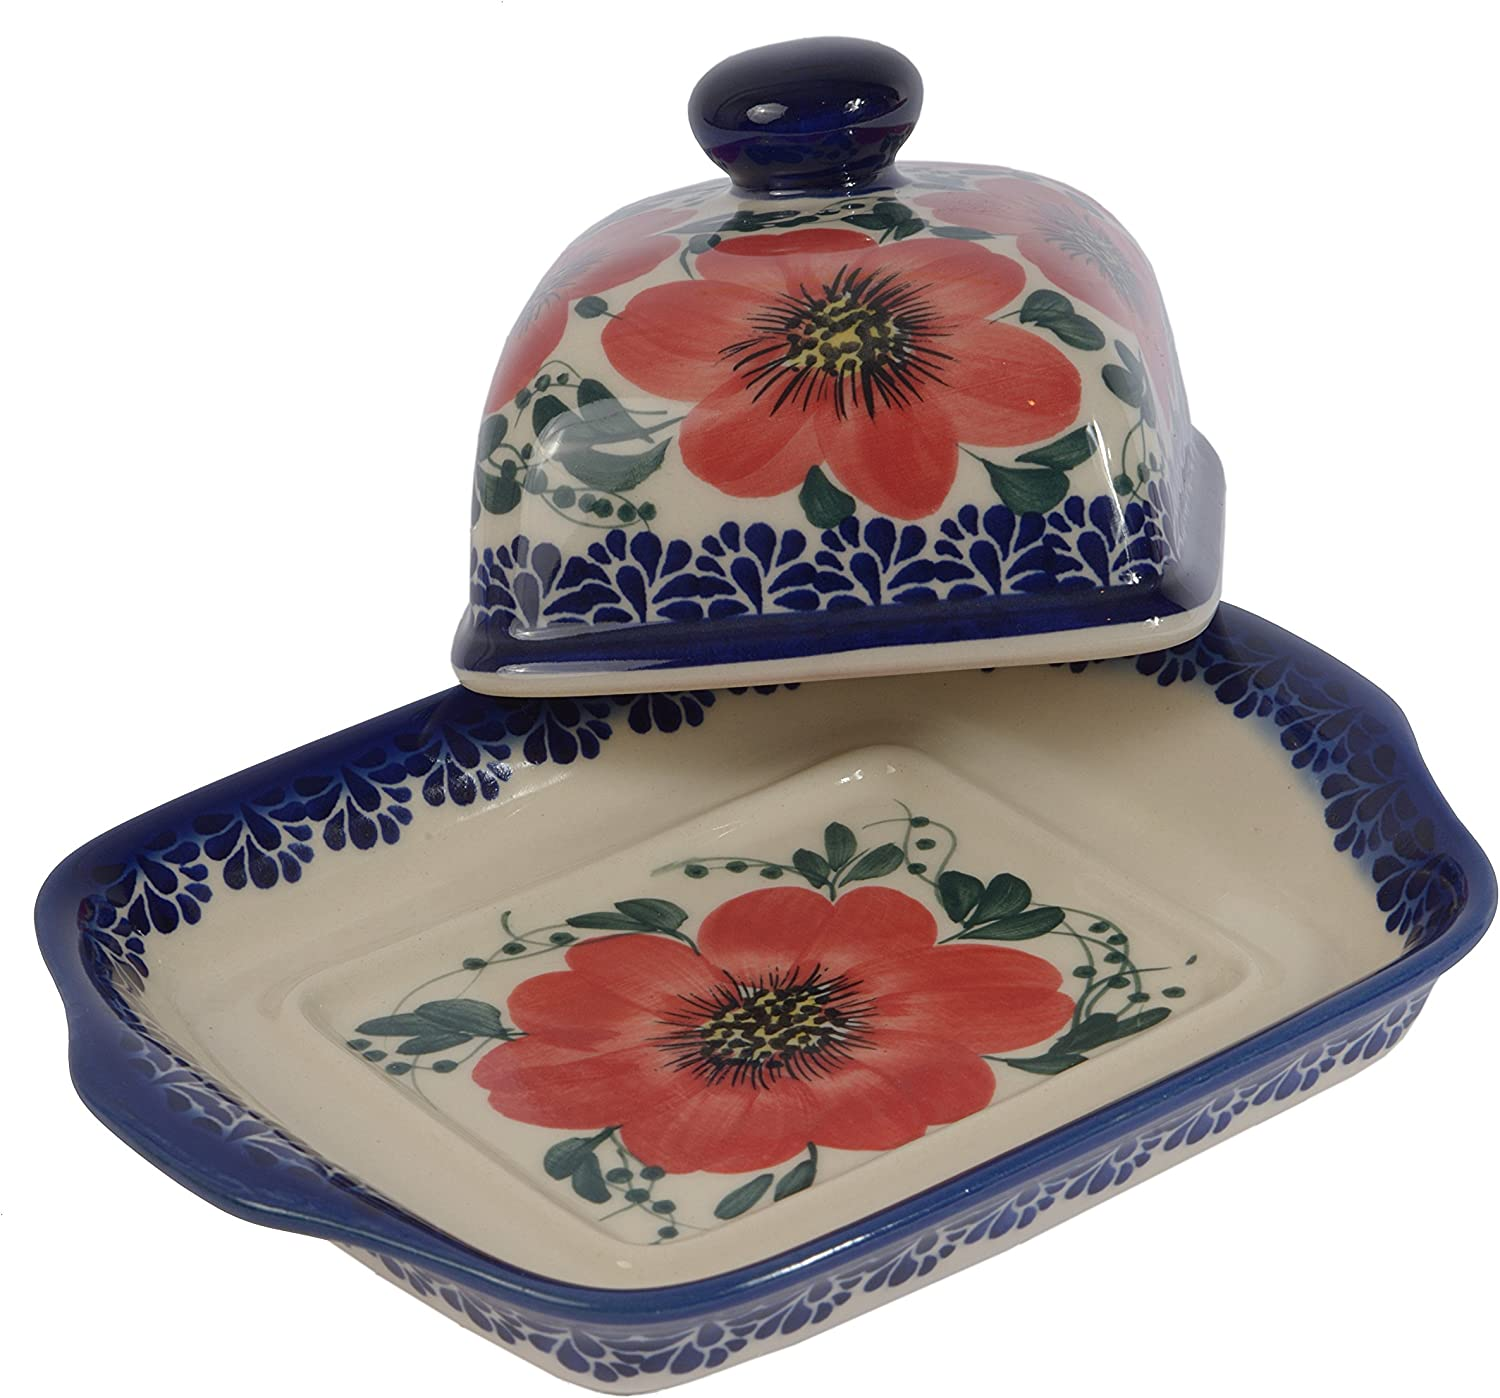 B.101.CREDO Traditional Polish Pottery Handcrafted Ceramic Butter Dish with Lid Boleslawiec Style Pattern